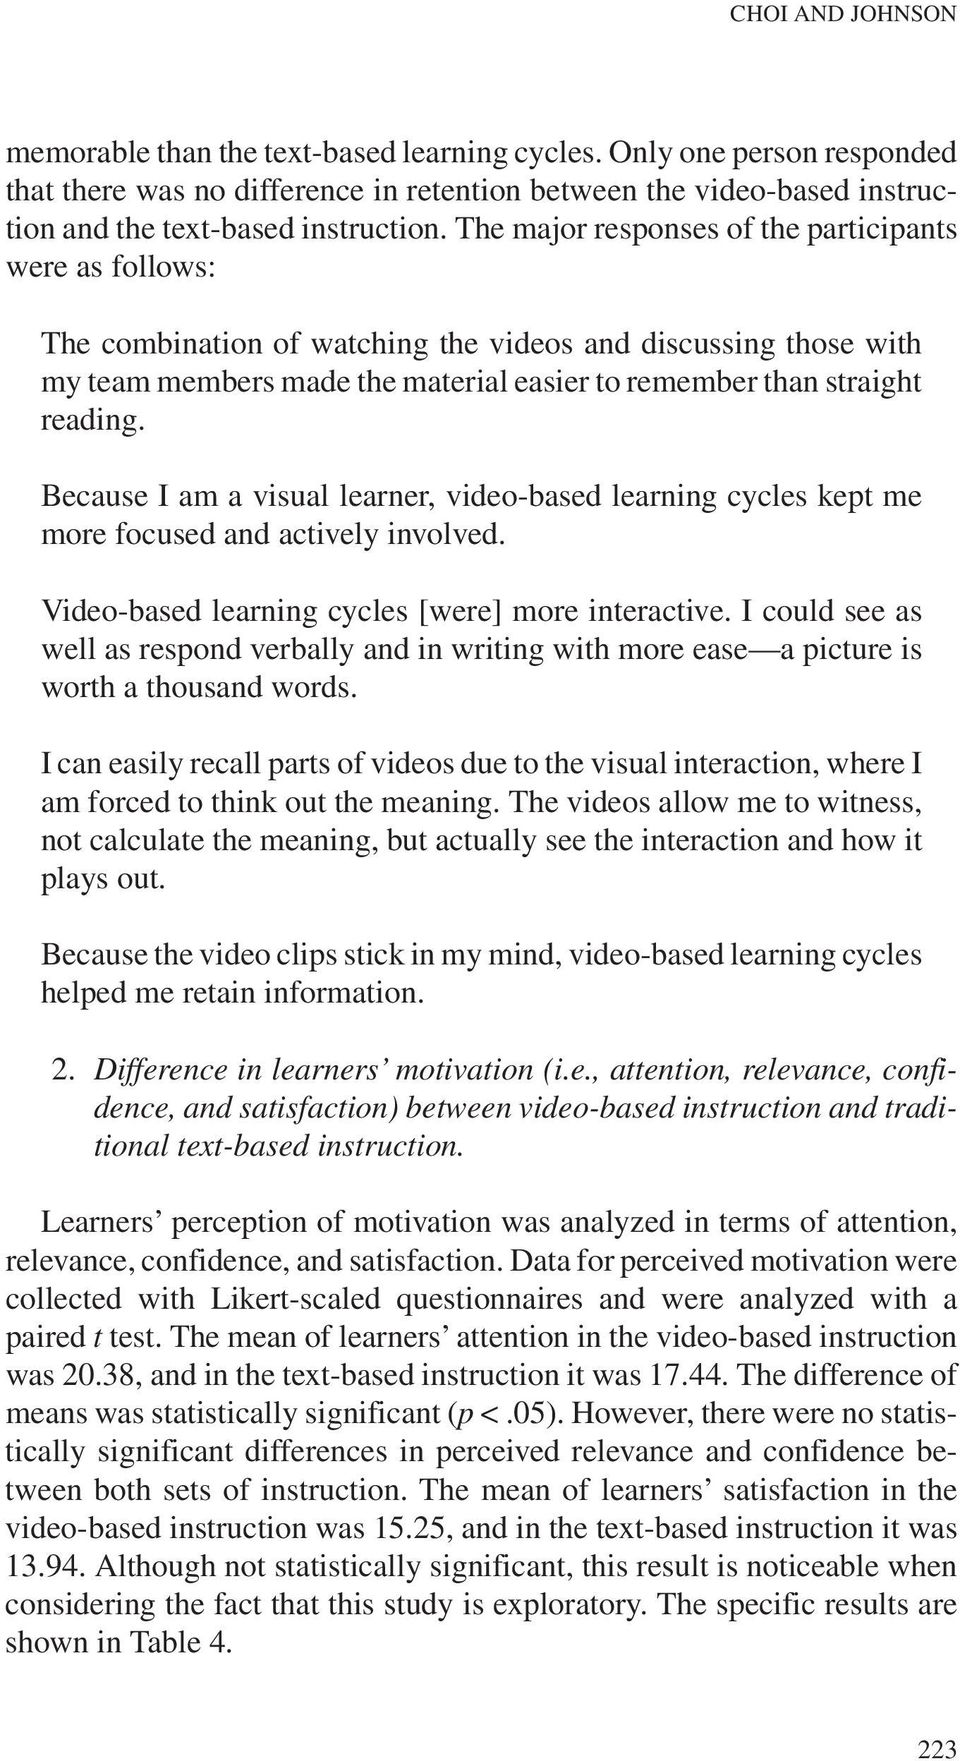 Because I am a visual learner, video-based learning cycles kept me more focused and actively involved. Video-based learning cycles [were] more interactive.